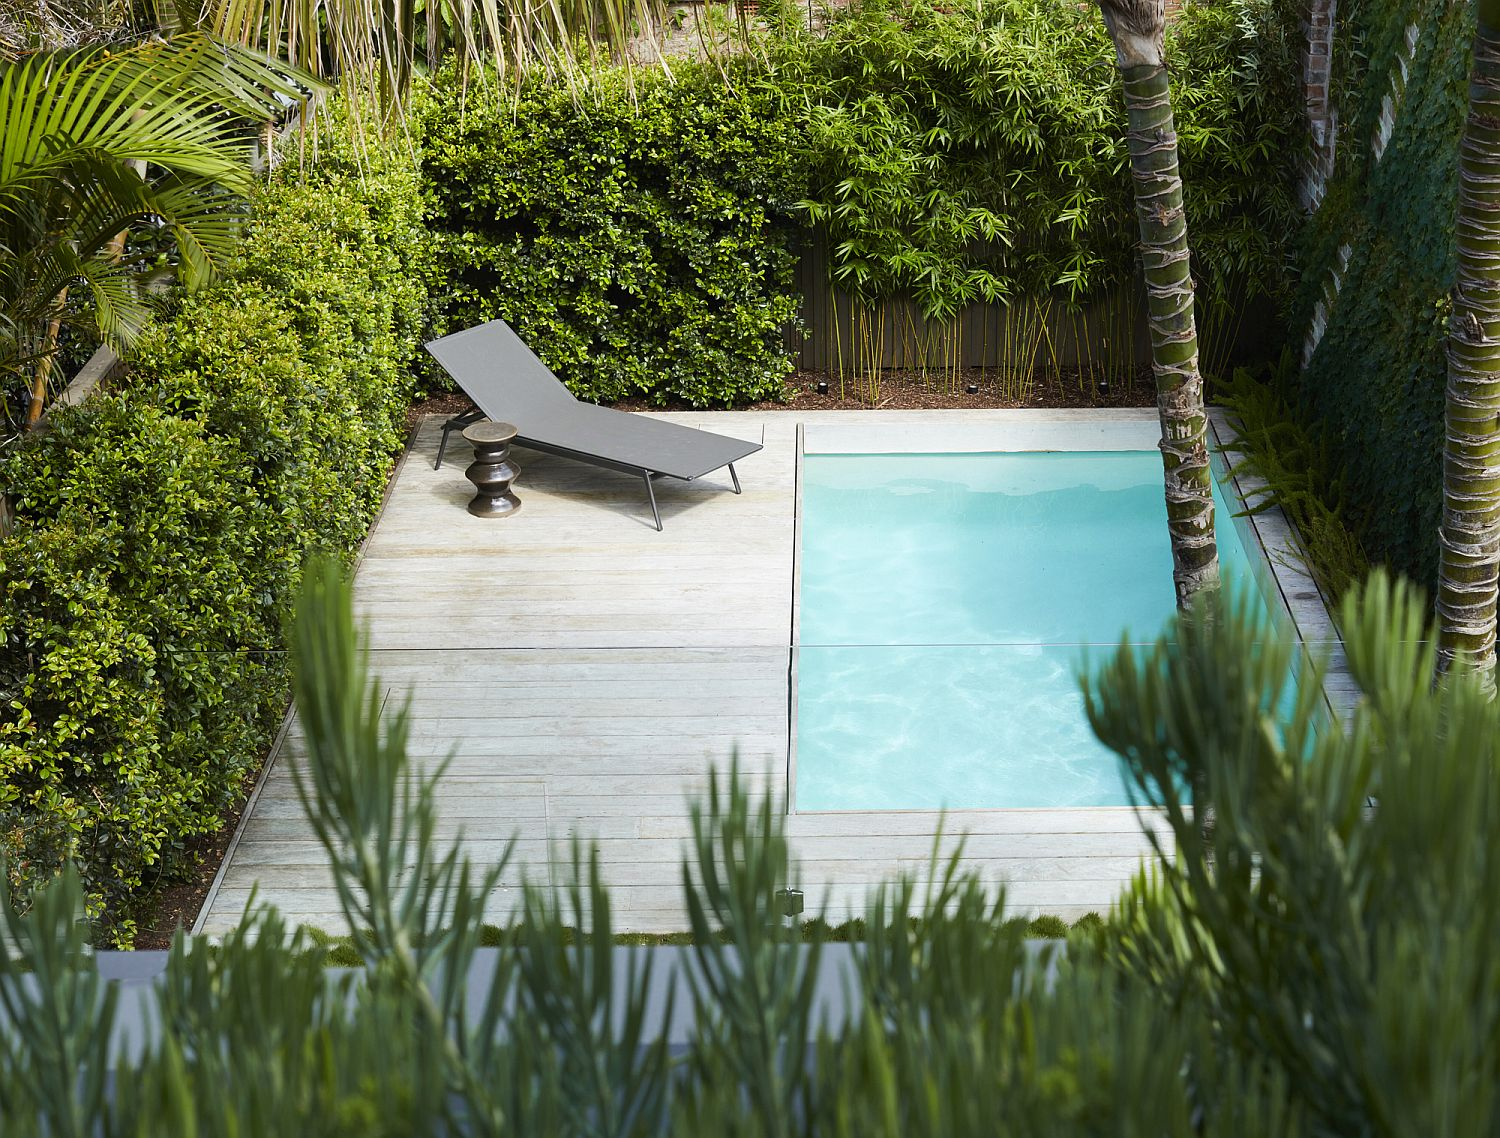 Small pool area and deck with greenery all around